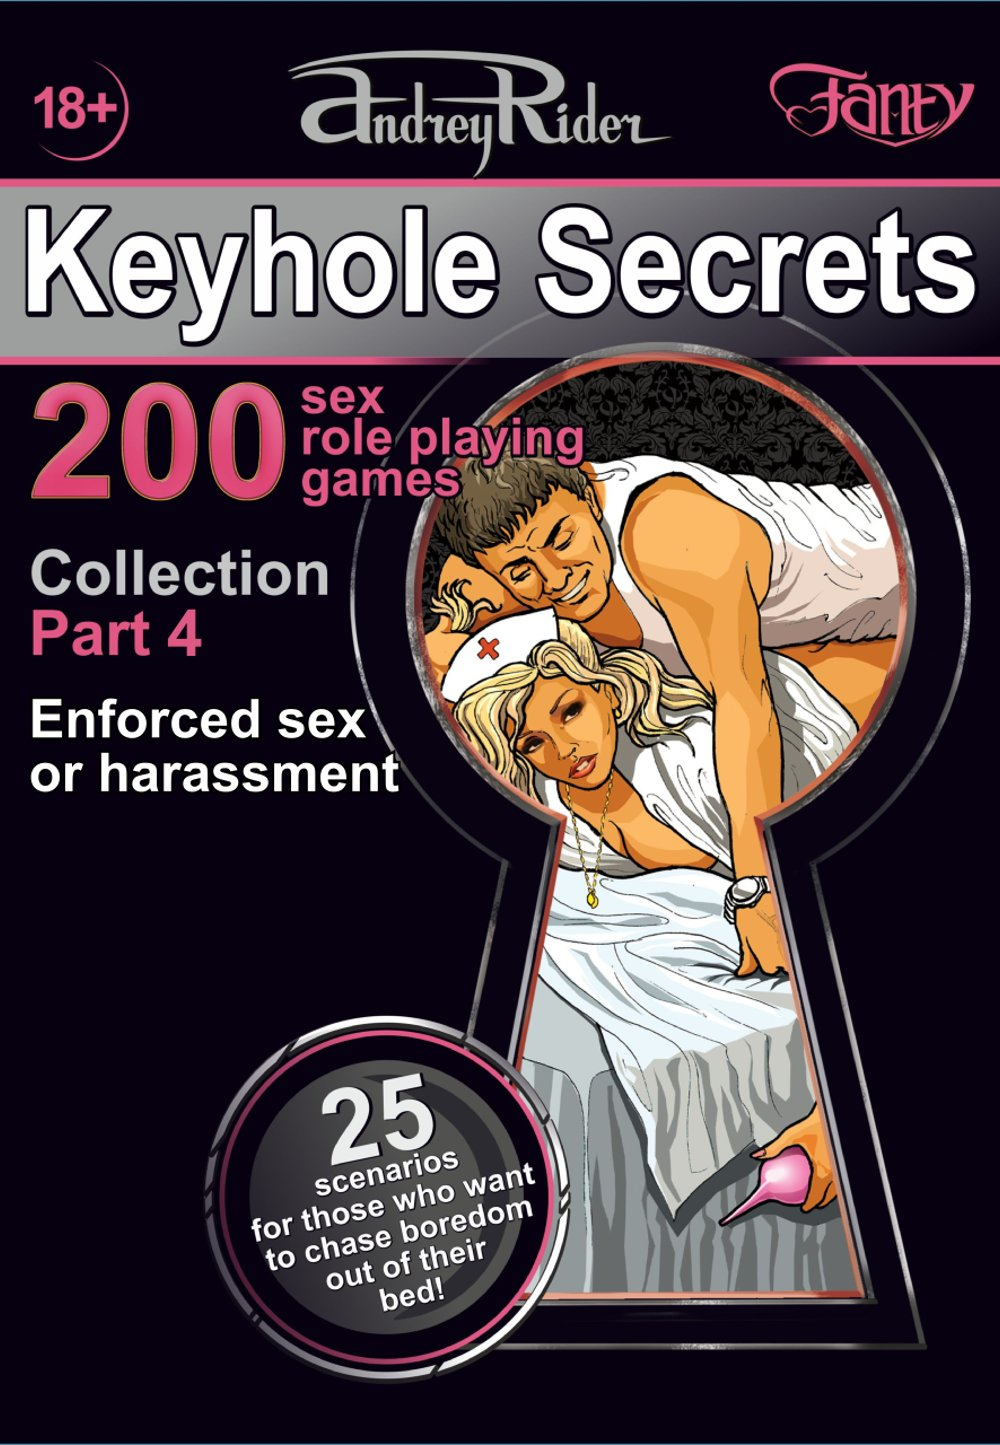 Collection of 200 Sex Role Playing Games. Part 4 (scenarios 76-100)